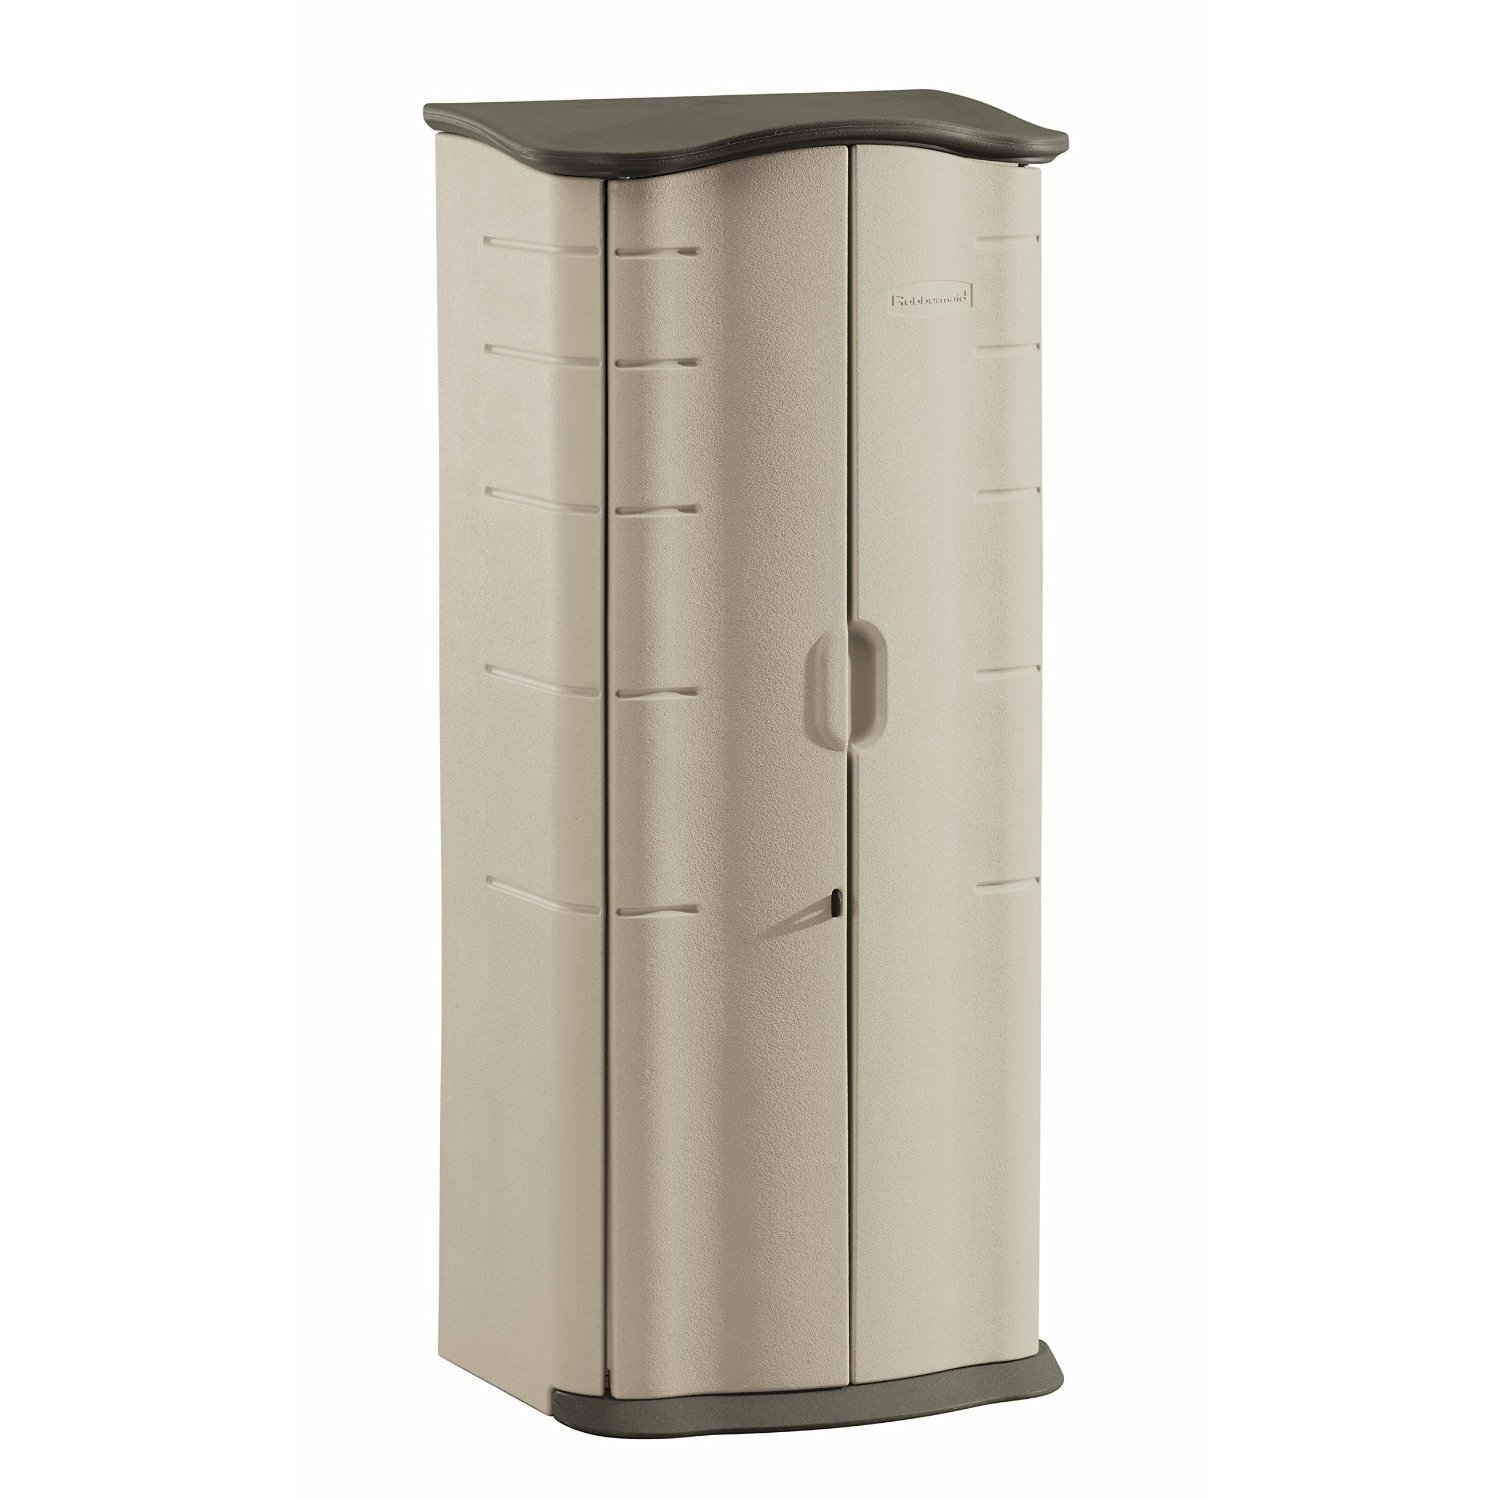 Amazon.com  Rubbermaid Outdoor Vertical Storage Shed Plastic 17 cu. ft. 2 ft. x 2 ft. Olive/Sandstone (FG374901OLVSS)  Storage Cabinet  Garden u0026 ...  sc 1 st  Amazon.com & Amazon.com : Rubbermaid Outdoor Vertical Storage Shed Plastic 17 ...